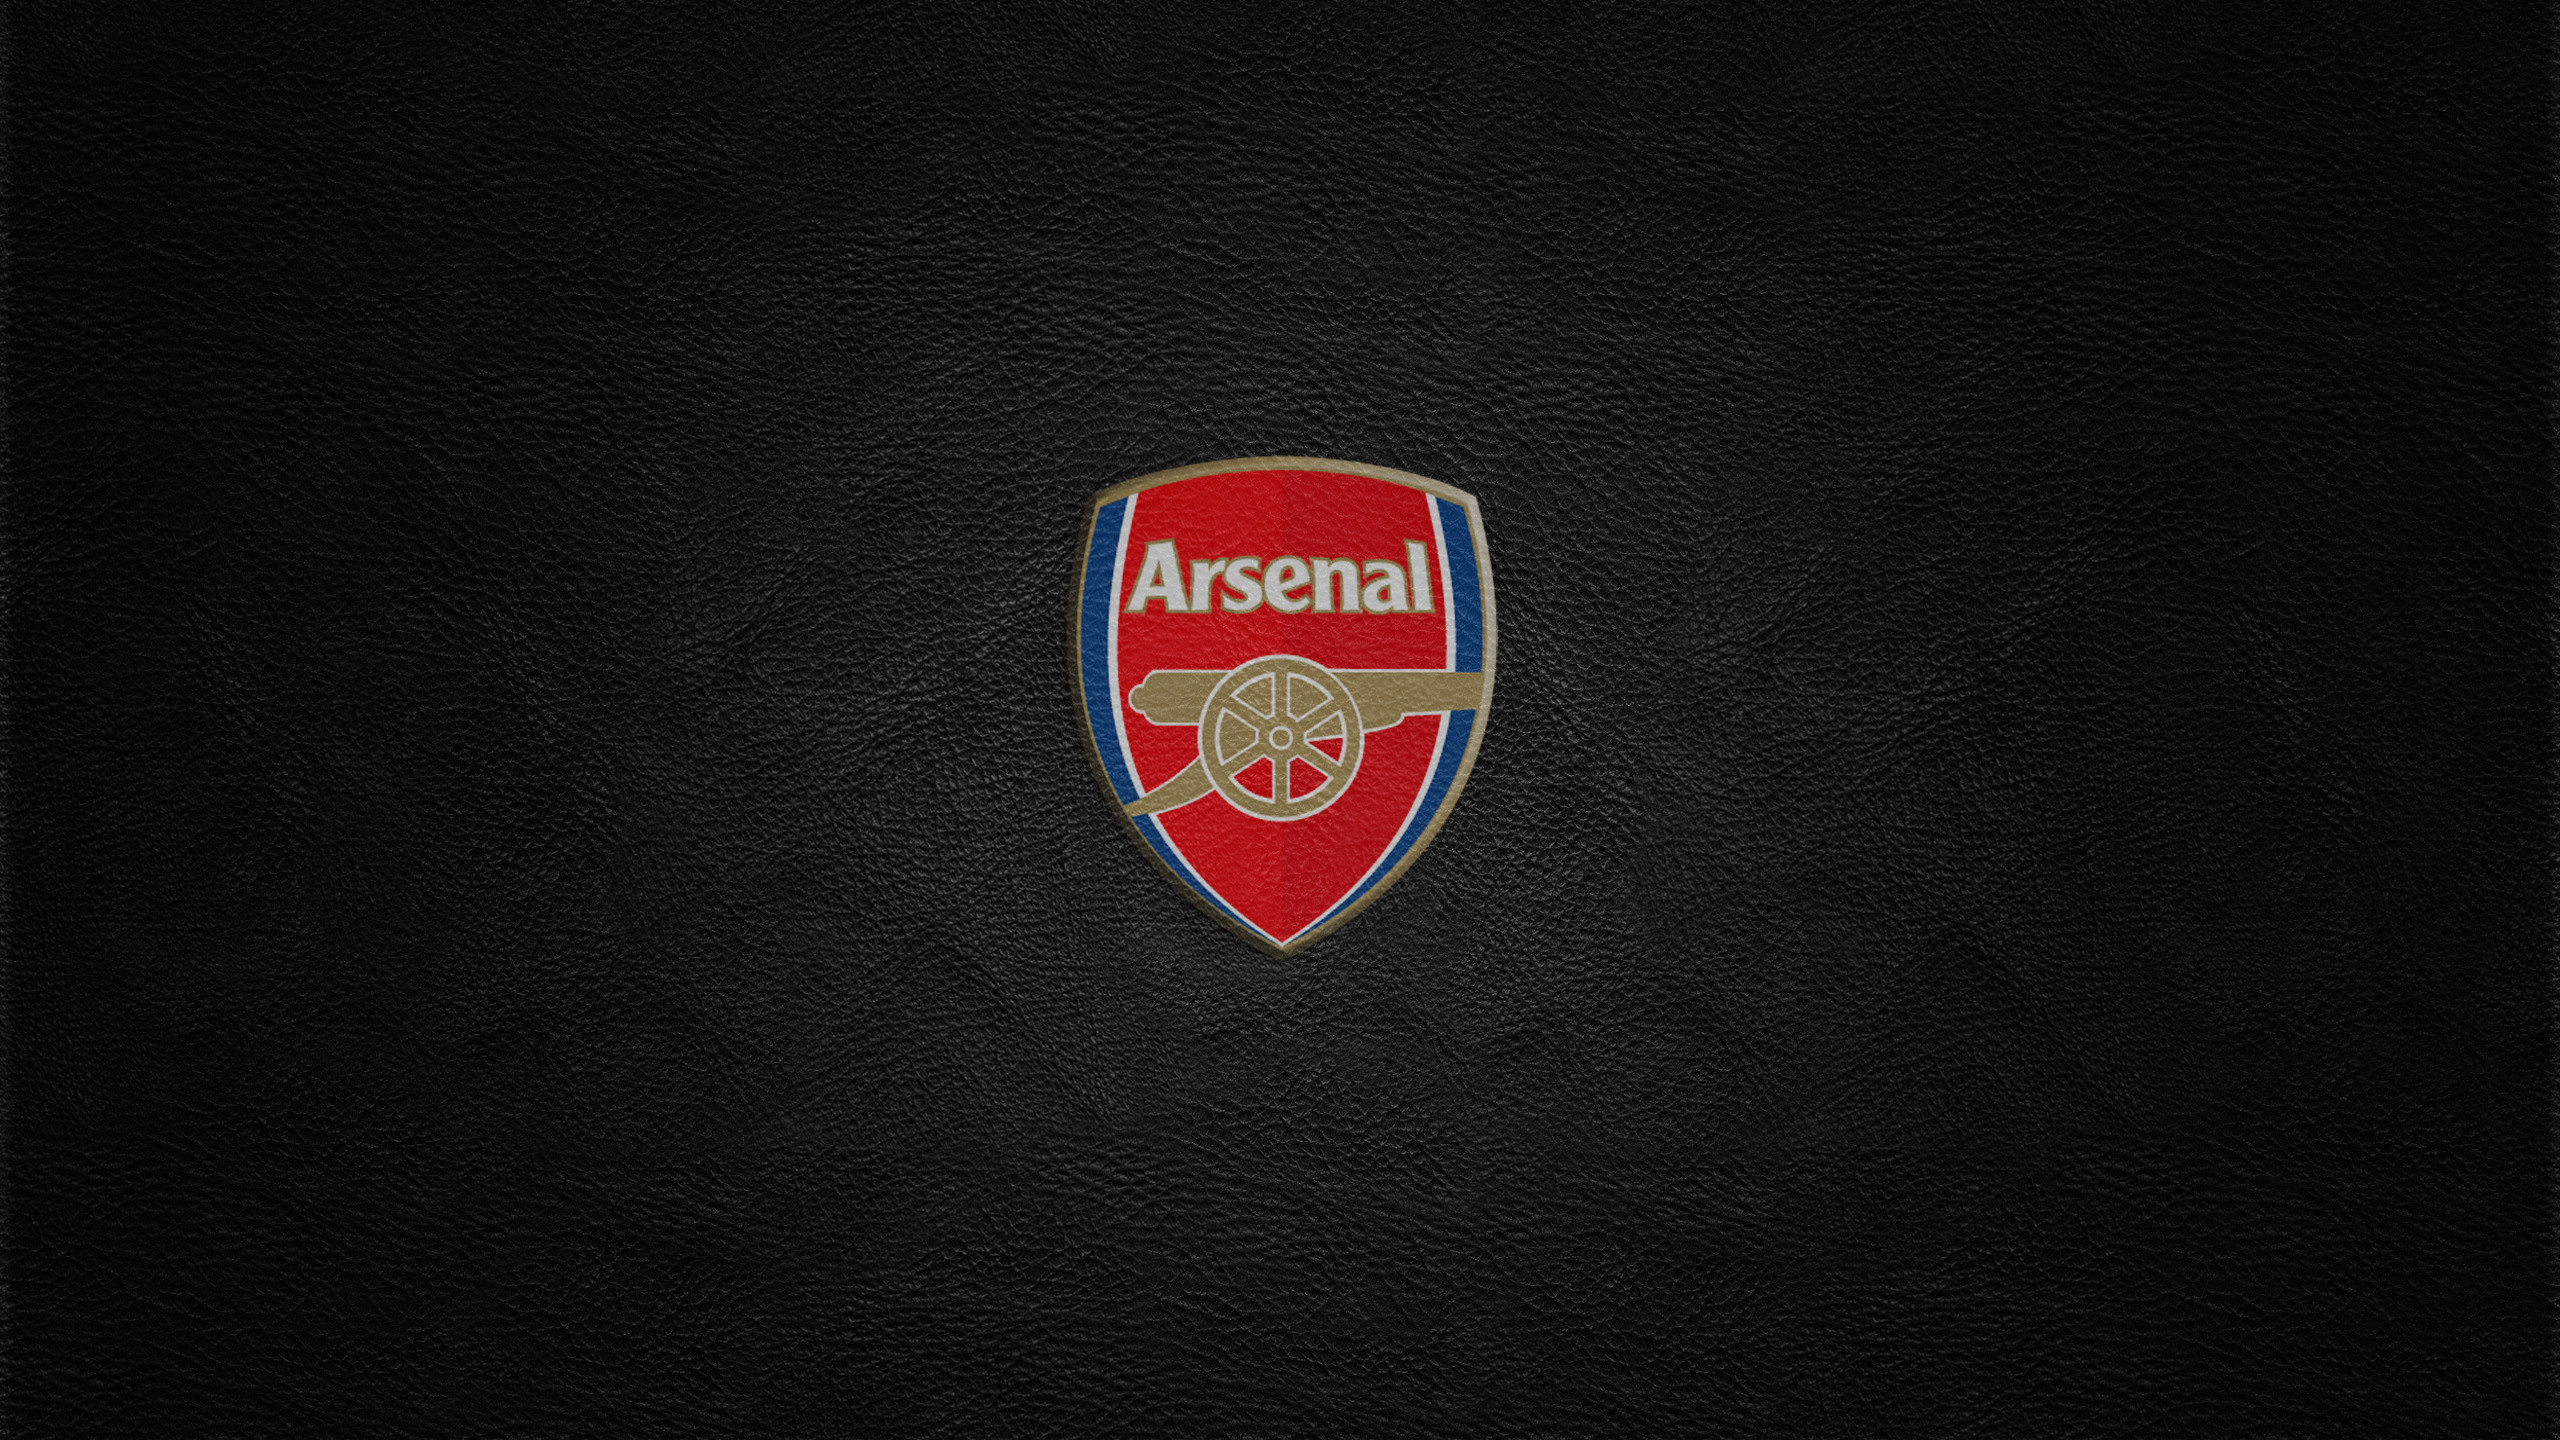 1080x1920 Arsenal Logo And Puma Wallpaper For Mobile